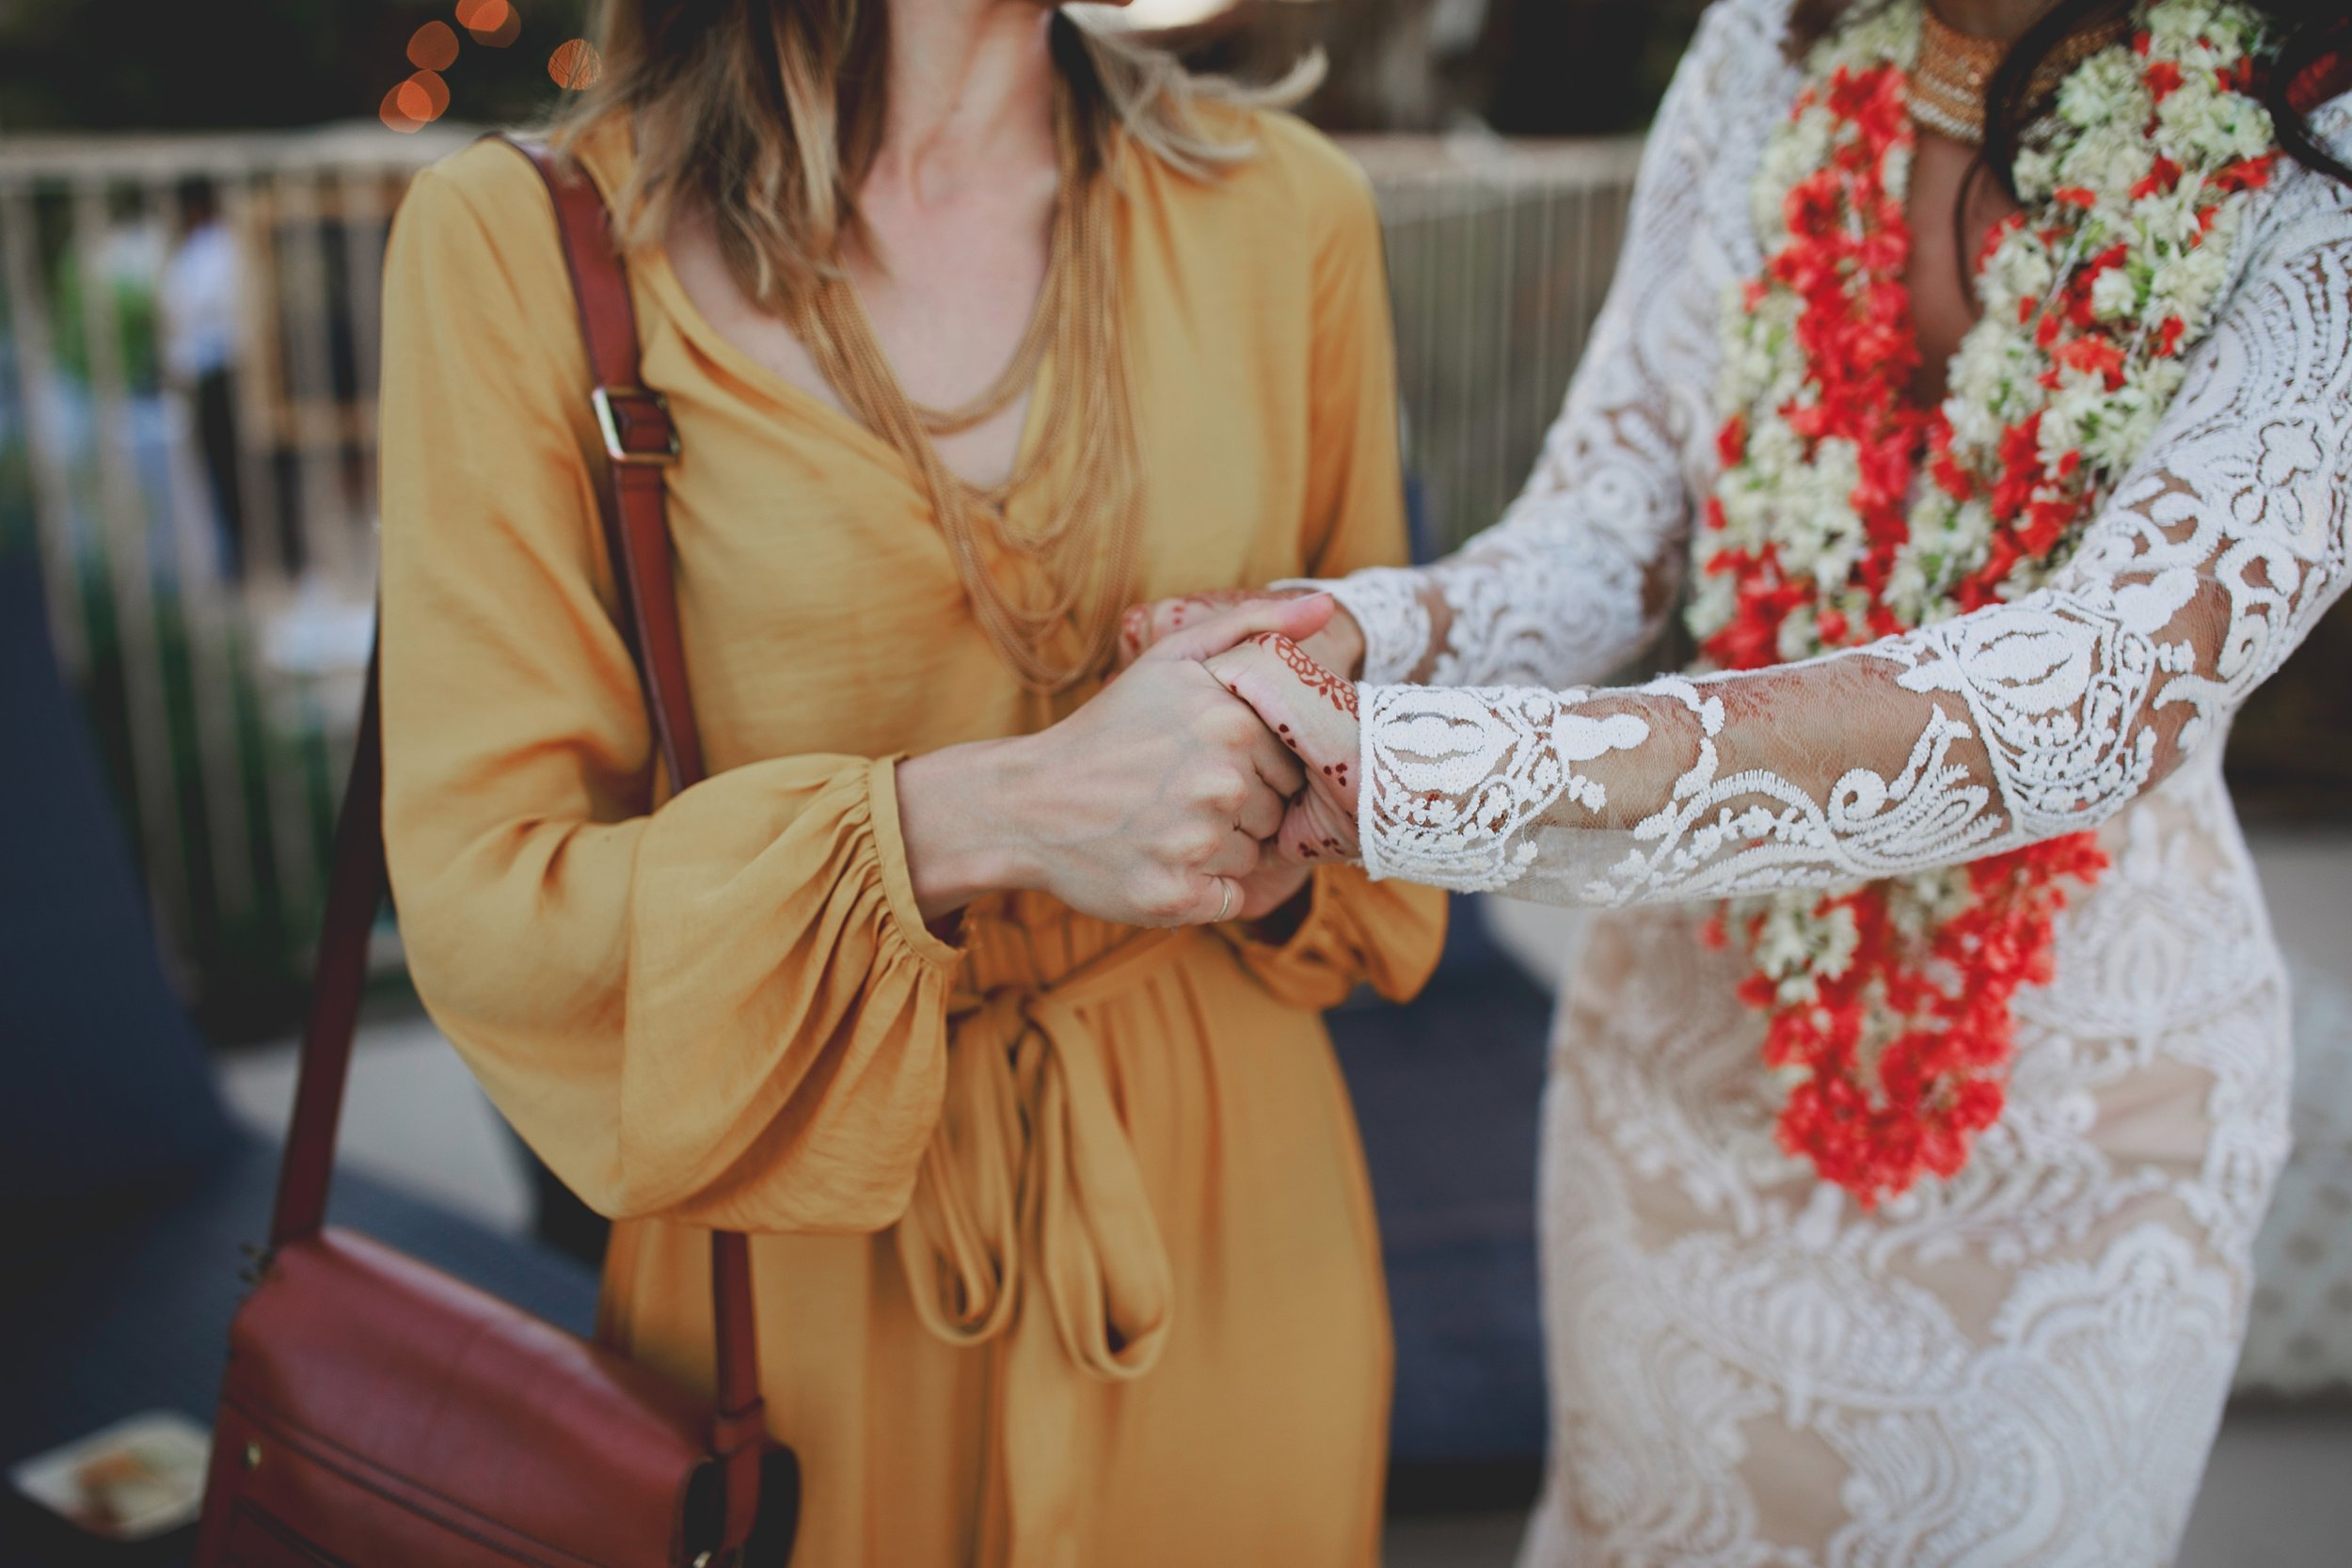 amanda_vanvels_joshua_tree_inn_wedding_122.jpg